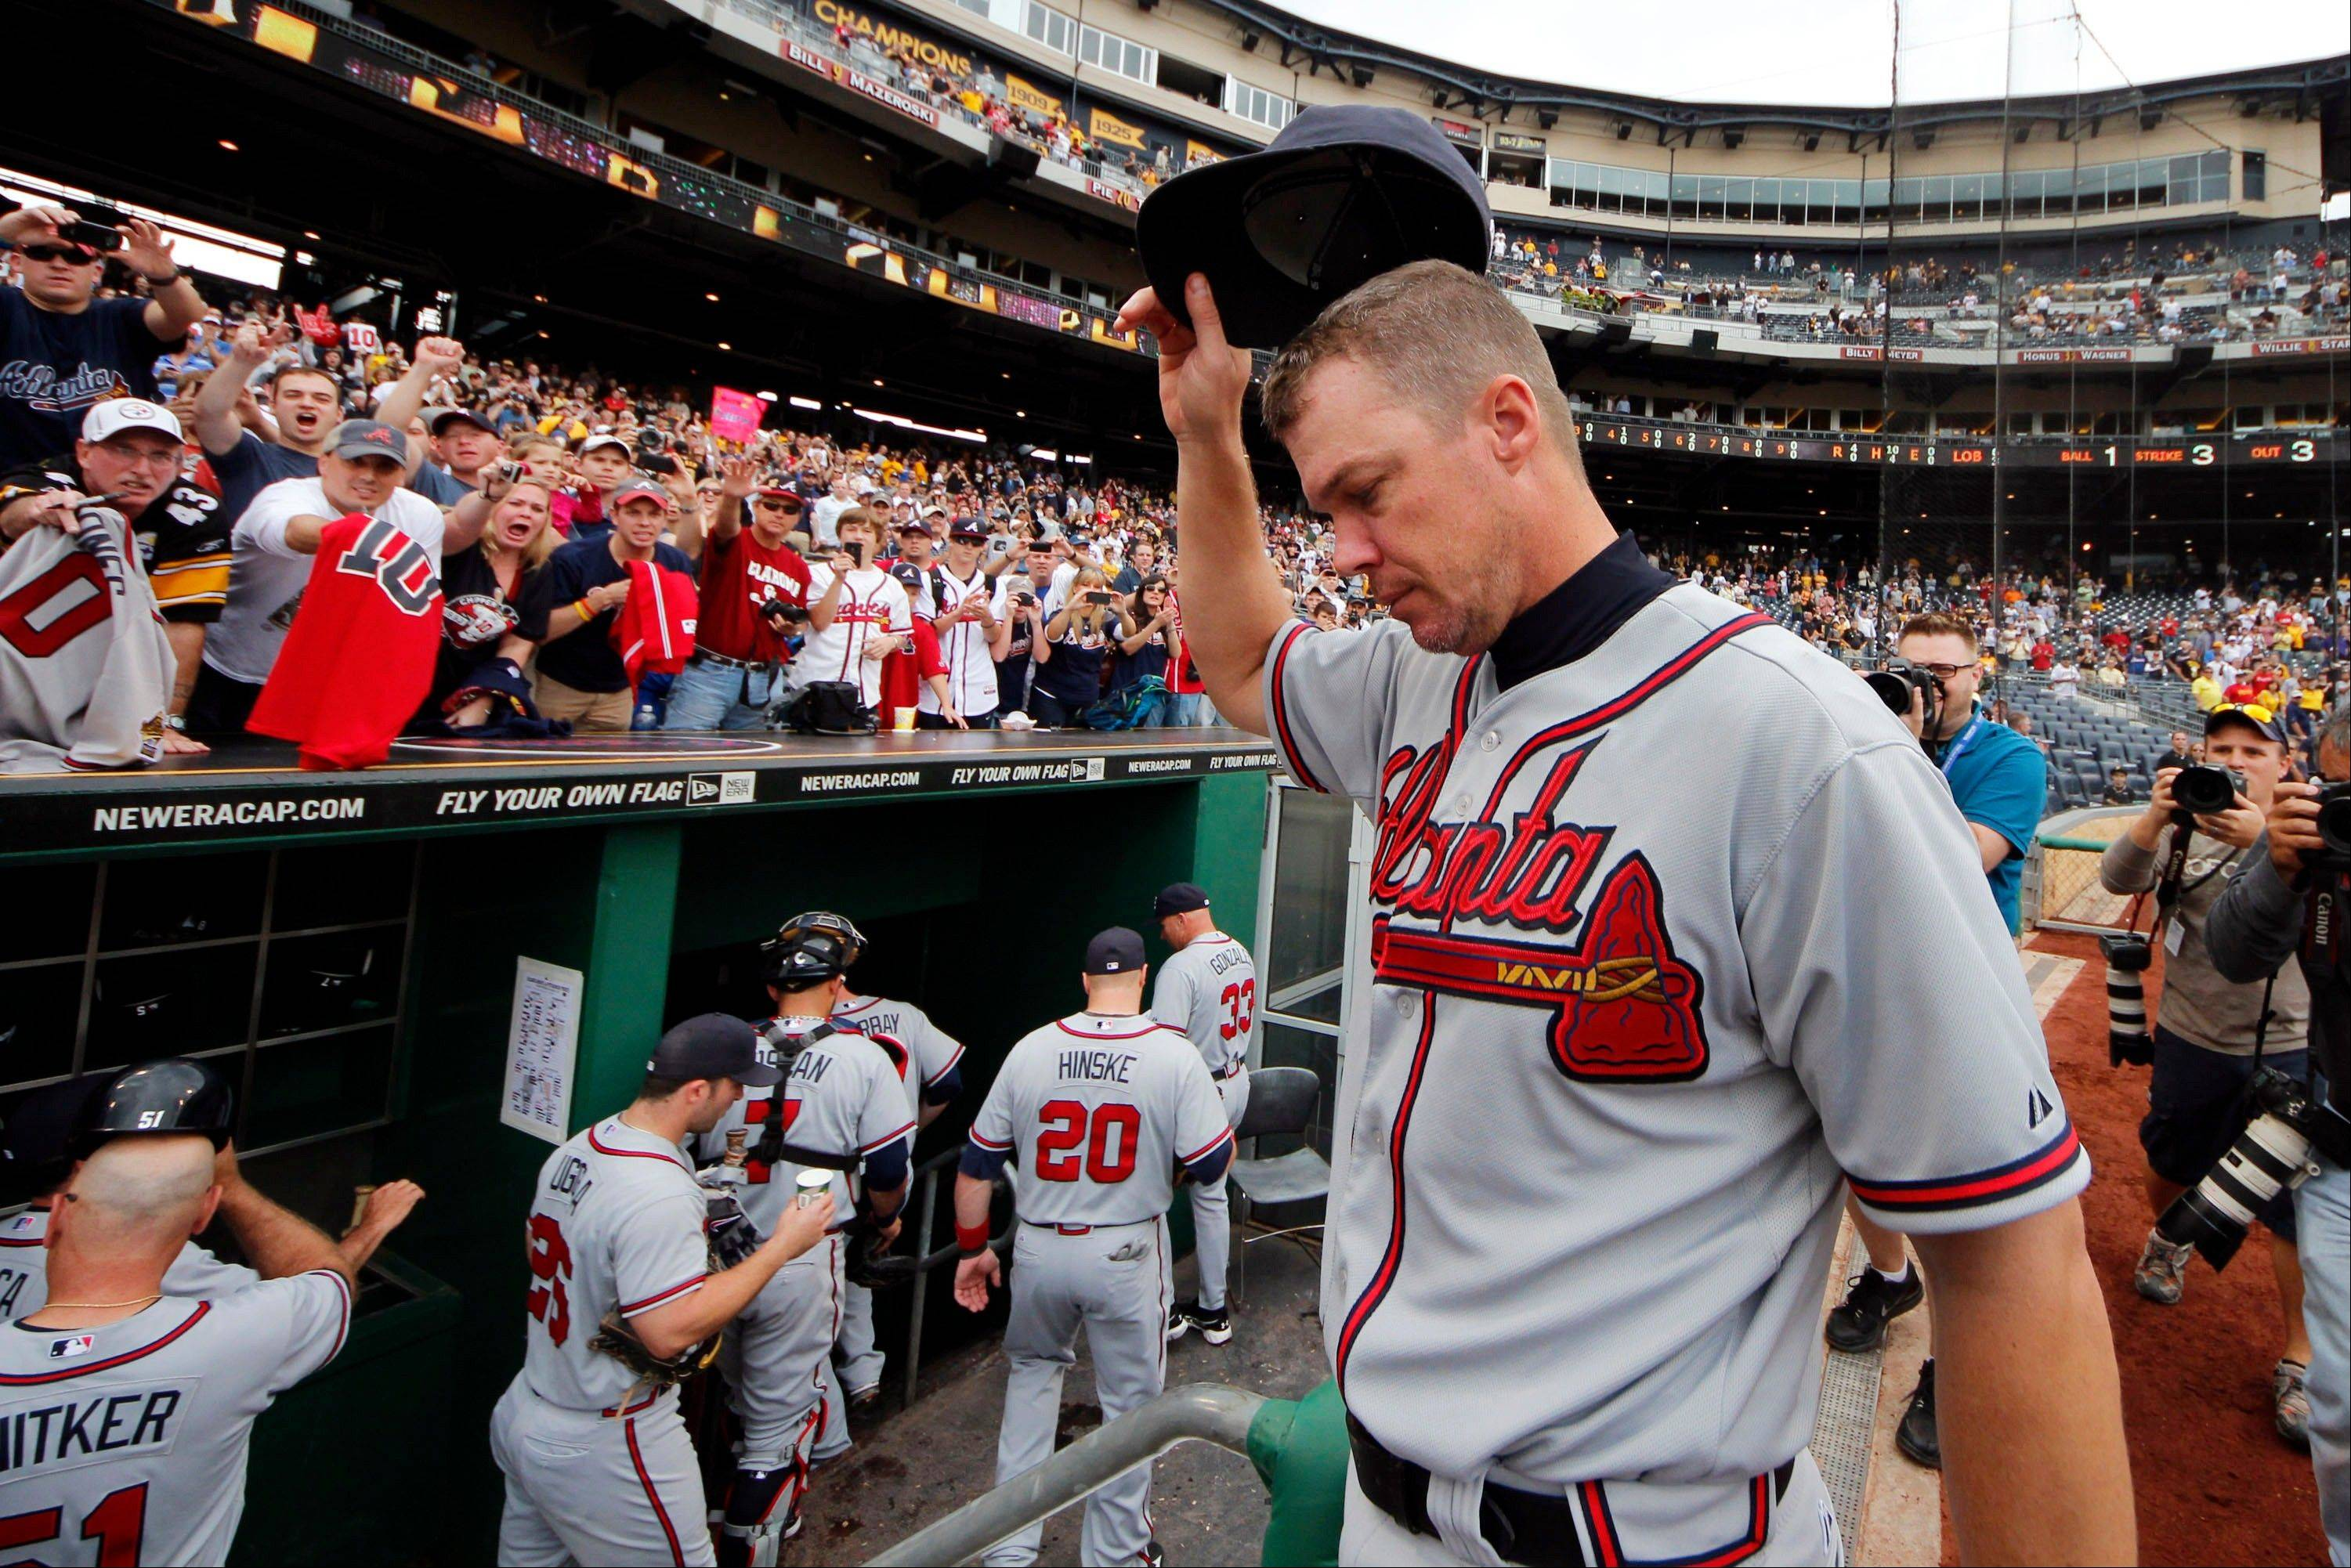 Atlanta Braves third baseman Chipper Jones acknowledges fans as he heads for the locker room Wednesday following a 4-0 win over the Pittsburgh Pirates in the final game of the regular baseball season in Pittsburgh.